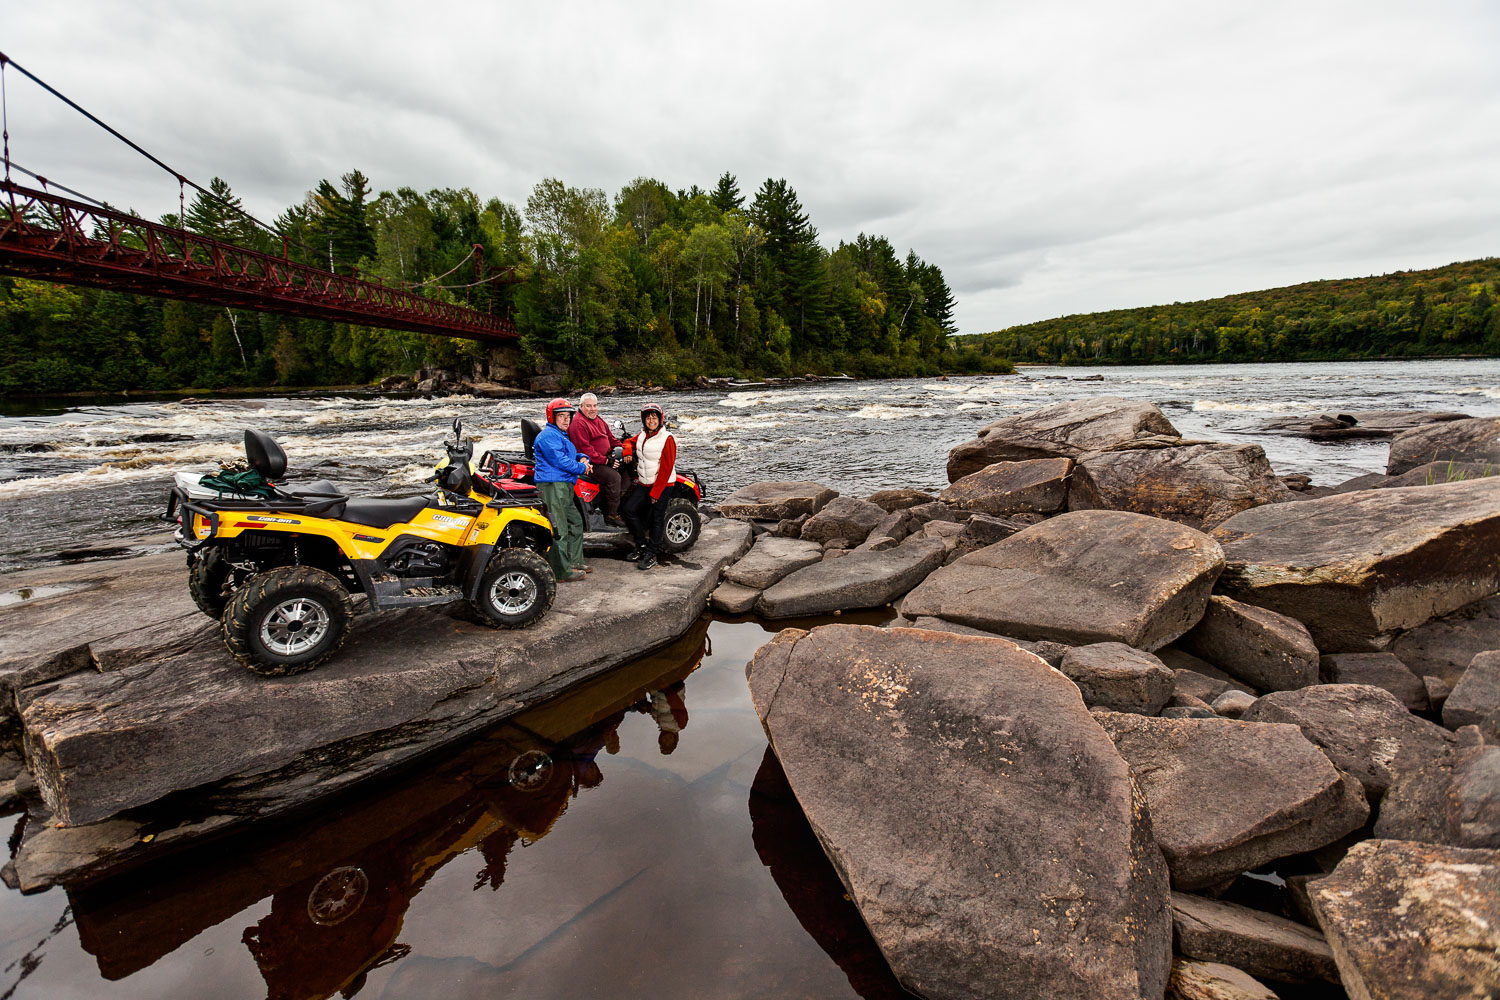 Photograph of some ATVs and their riders on a river